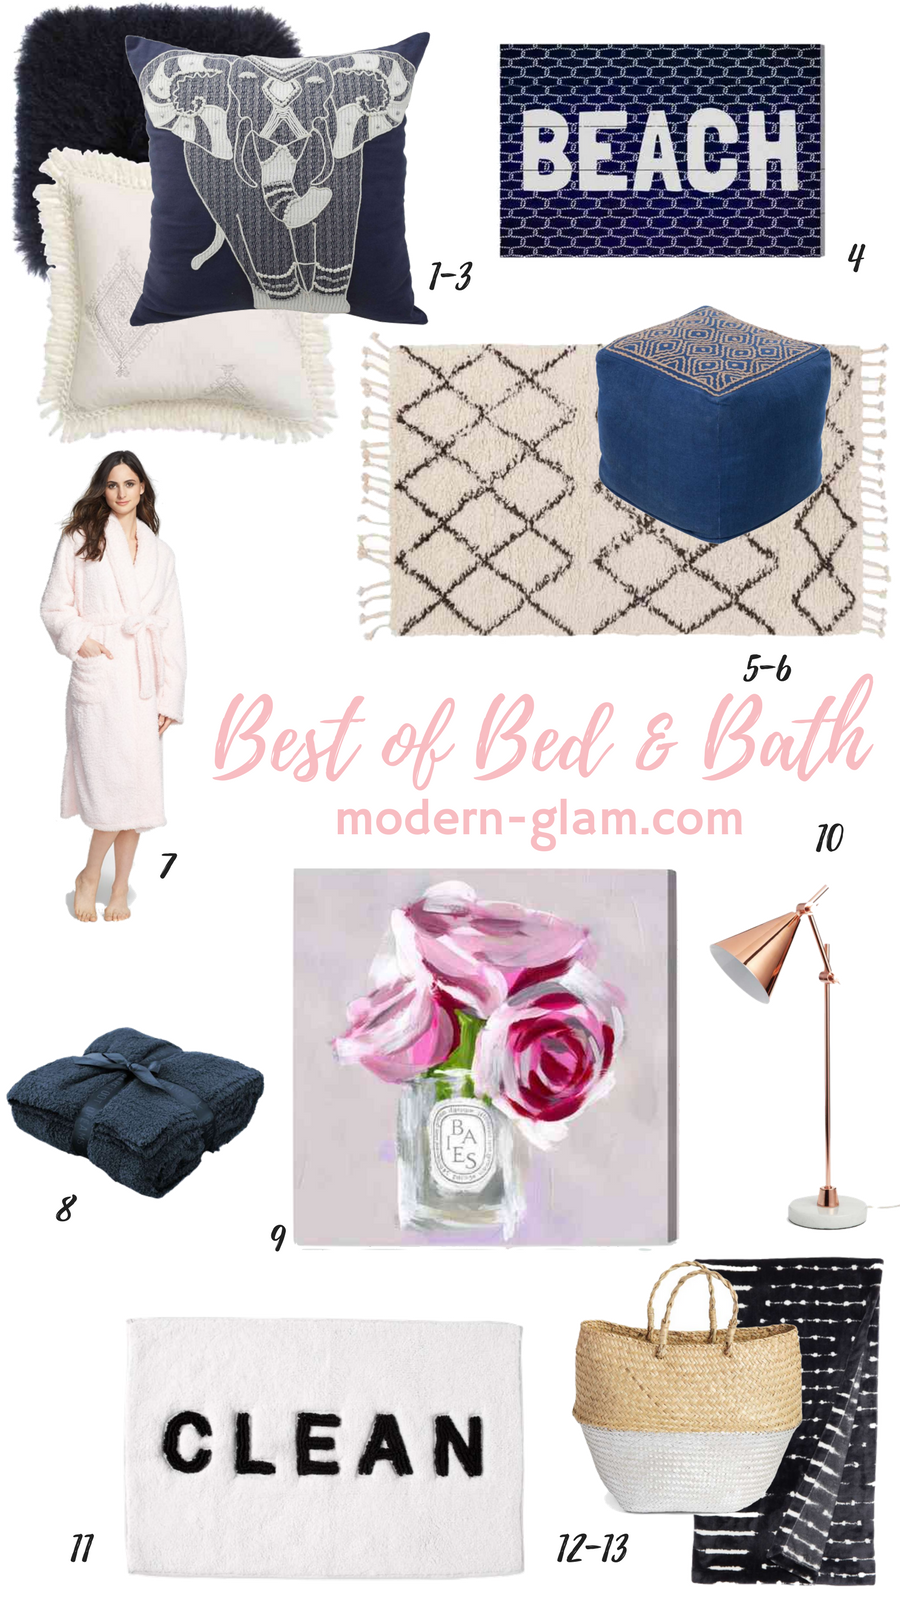 Nordstrom Anniversary Sale 2017 - Best of Bed & Bath